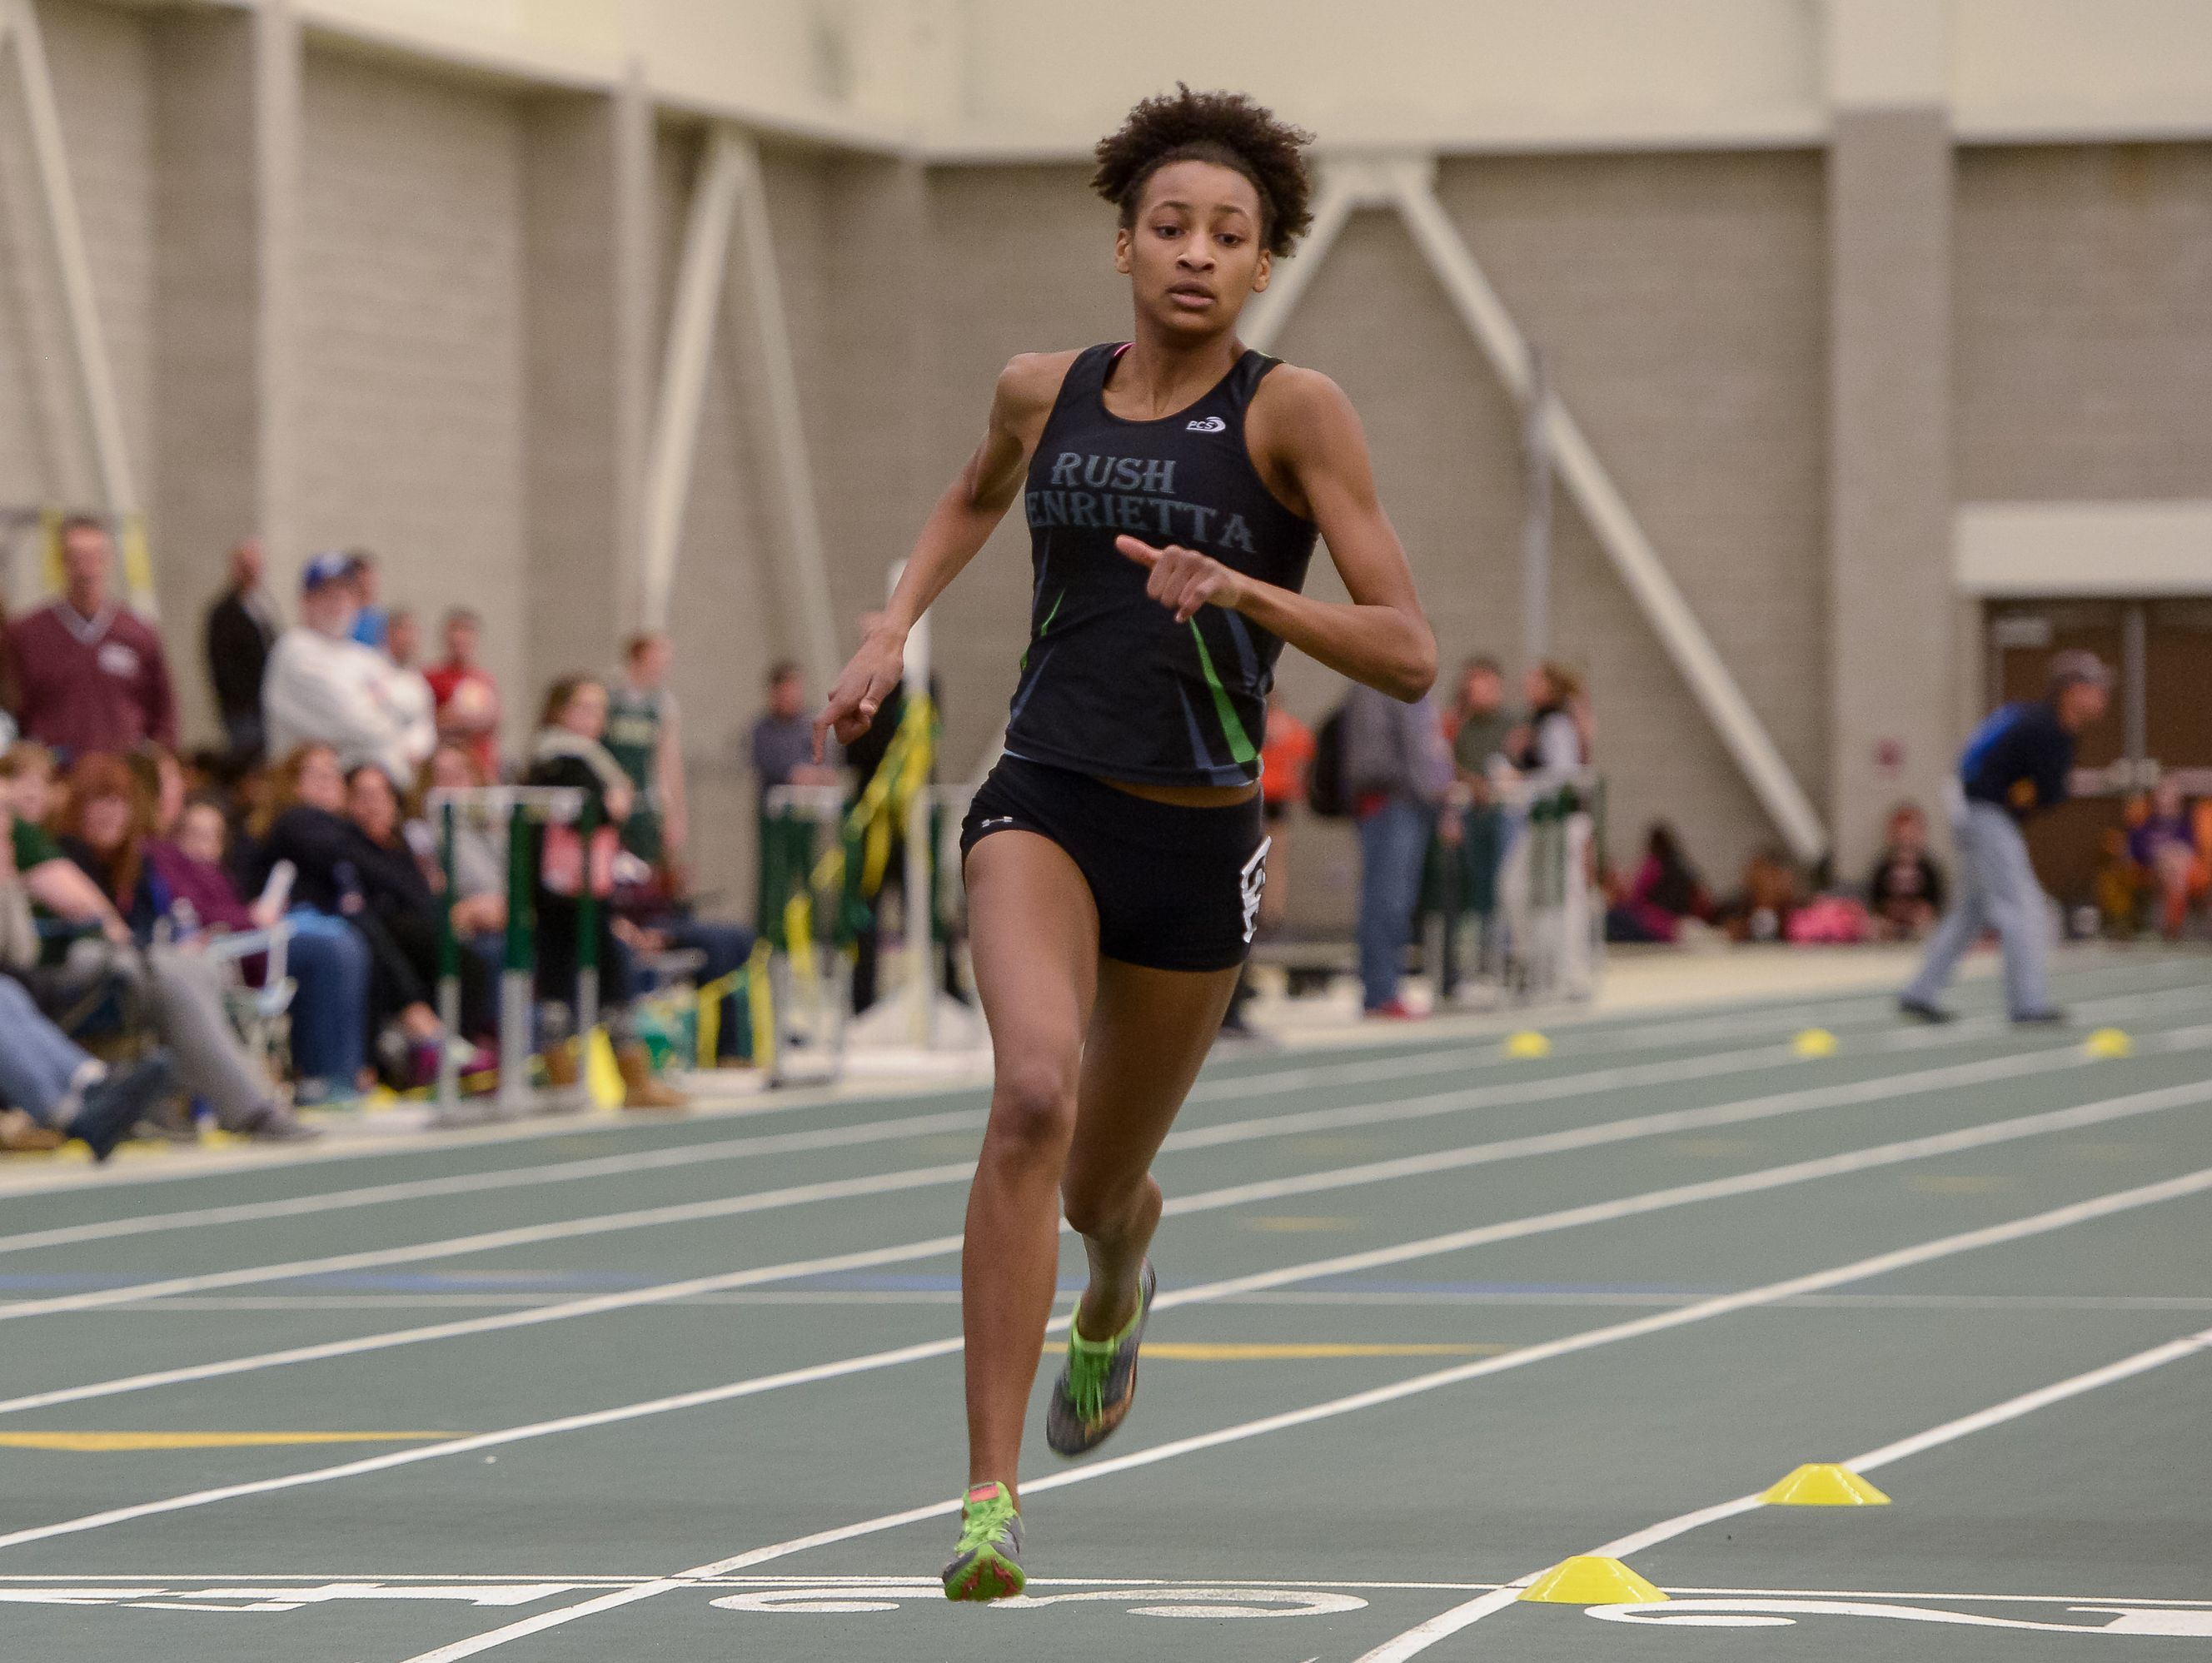 Rush-Henrietta's Sammy Watson runs in the 600 meters during an indoor track meet at The College at Brockport on Jan. 16, 2016.